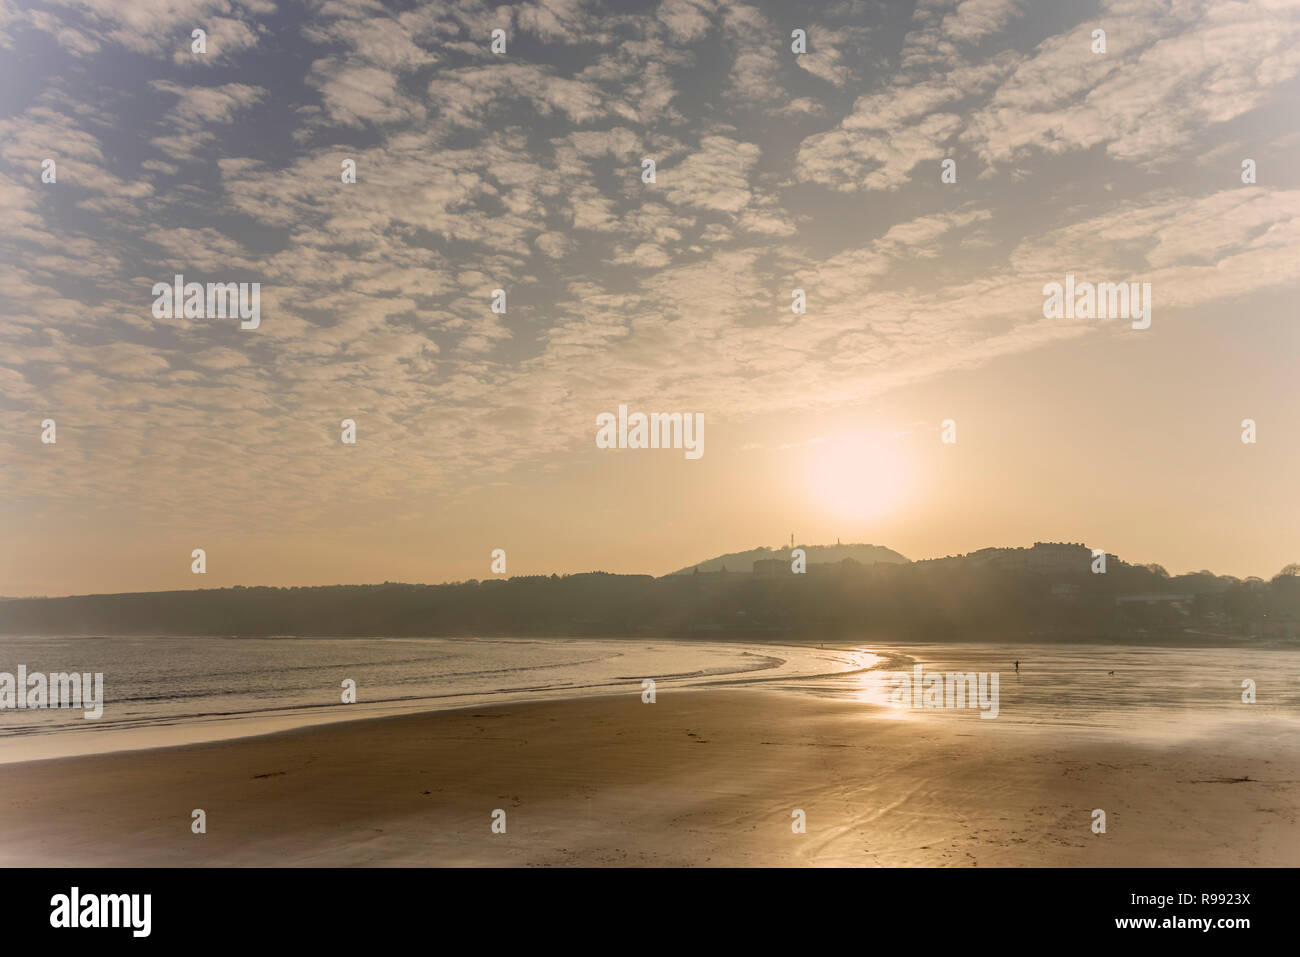 The beach and coast at Scarborough looking into the sun. The empty beach stretches out to a headland and a cloud filled sky is above. - Stock Image